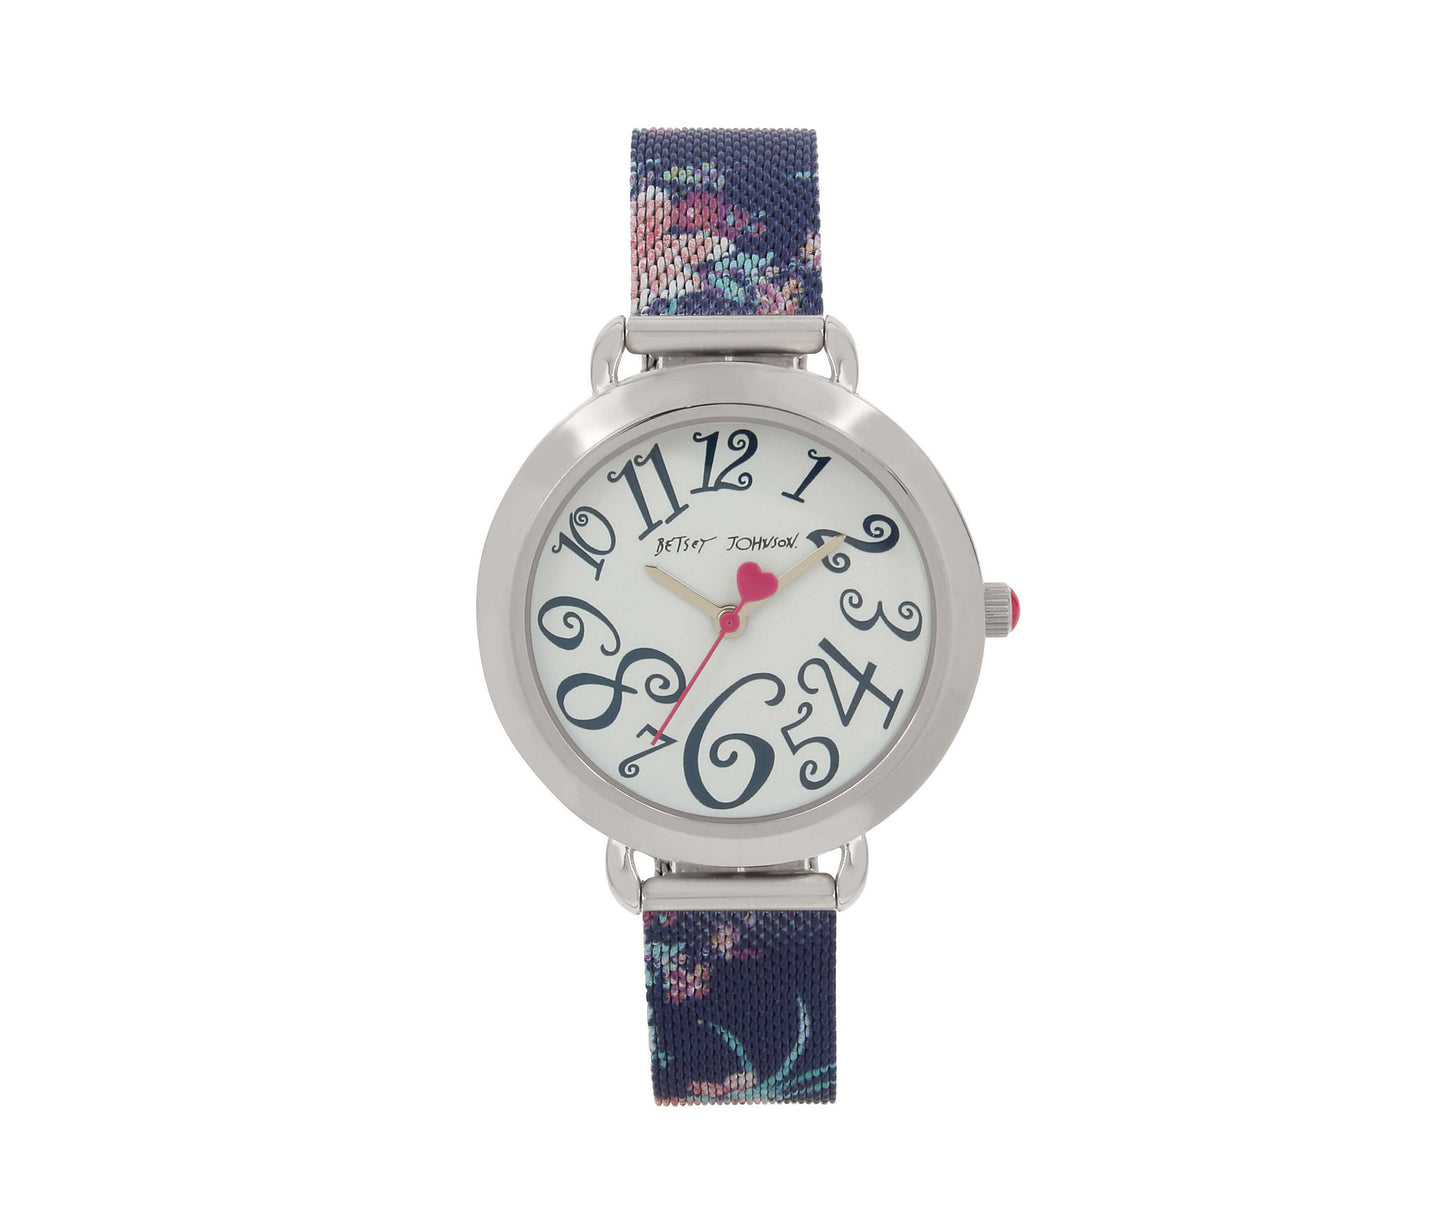 FLORAL MESH STRAP NAVY WATCH NAVY - JEWELRY - Betsey Johnson